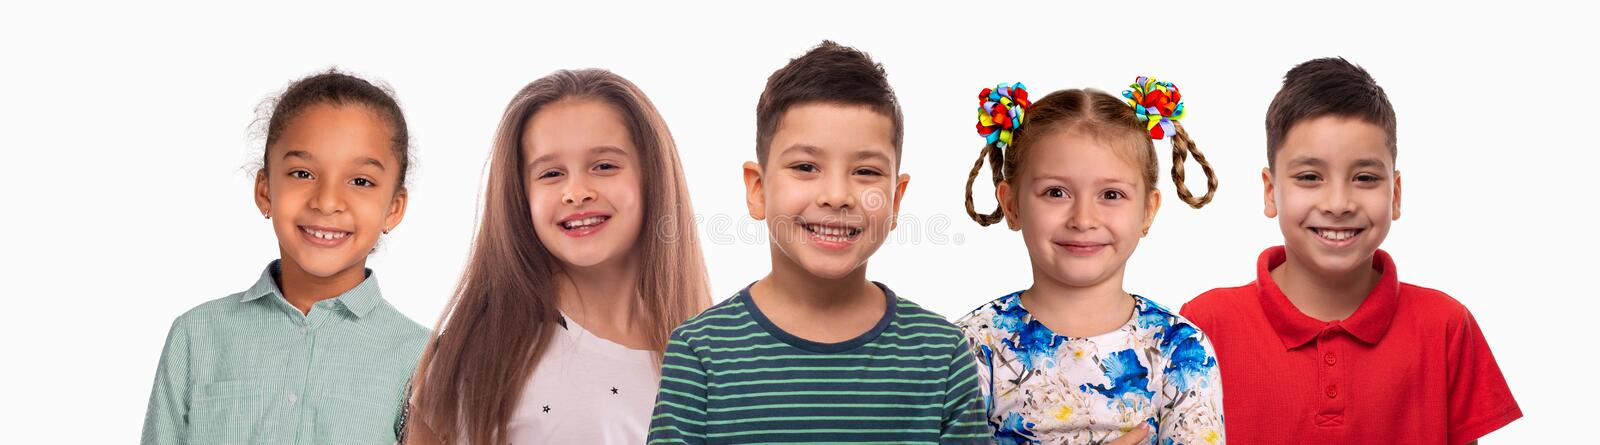 Collage  of the studio portraits of smiling schoolchilds  of different races ,  on white royalty free stock photos